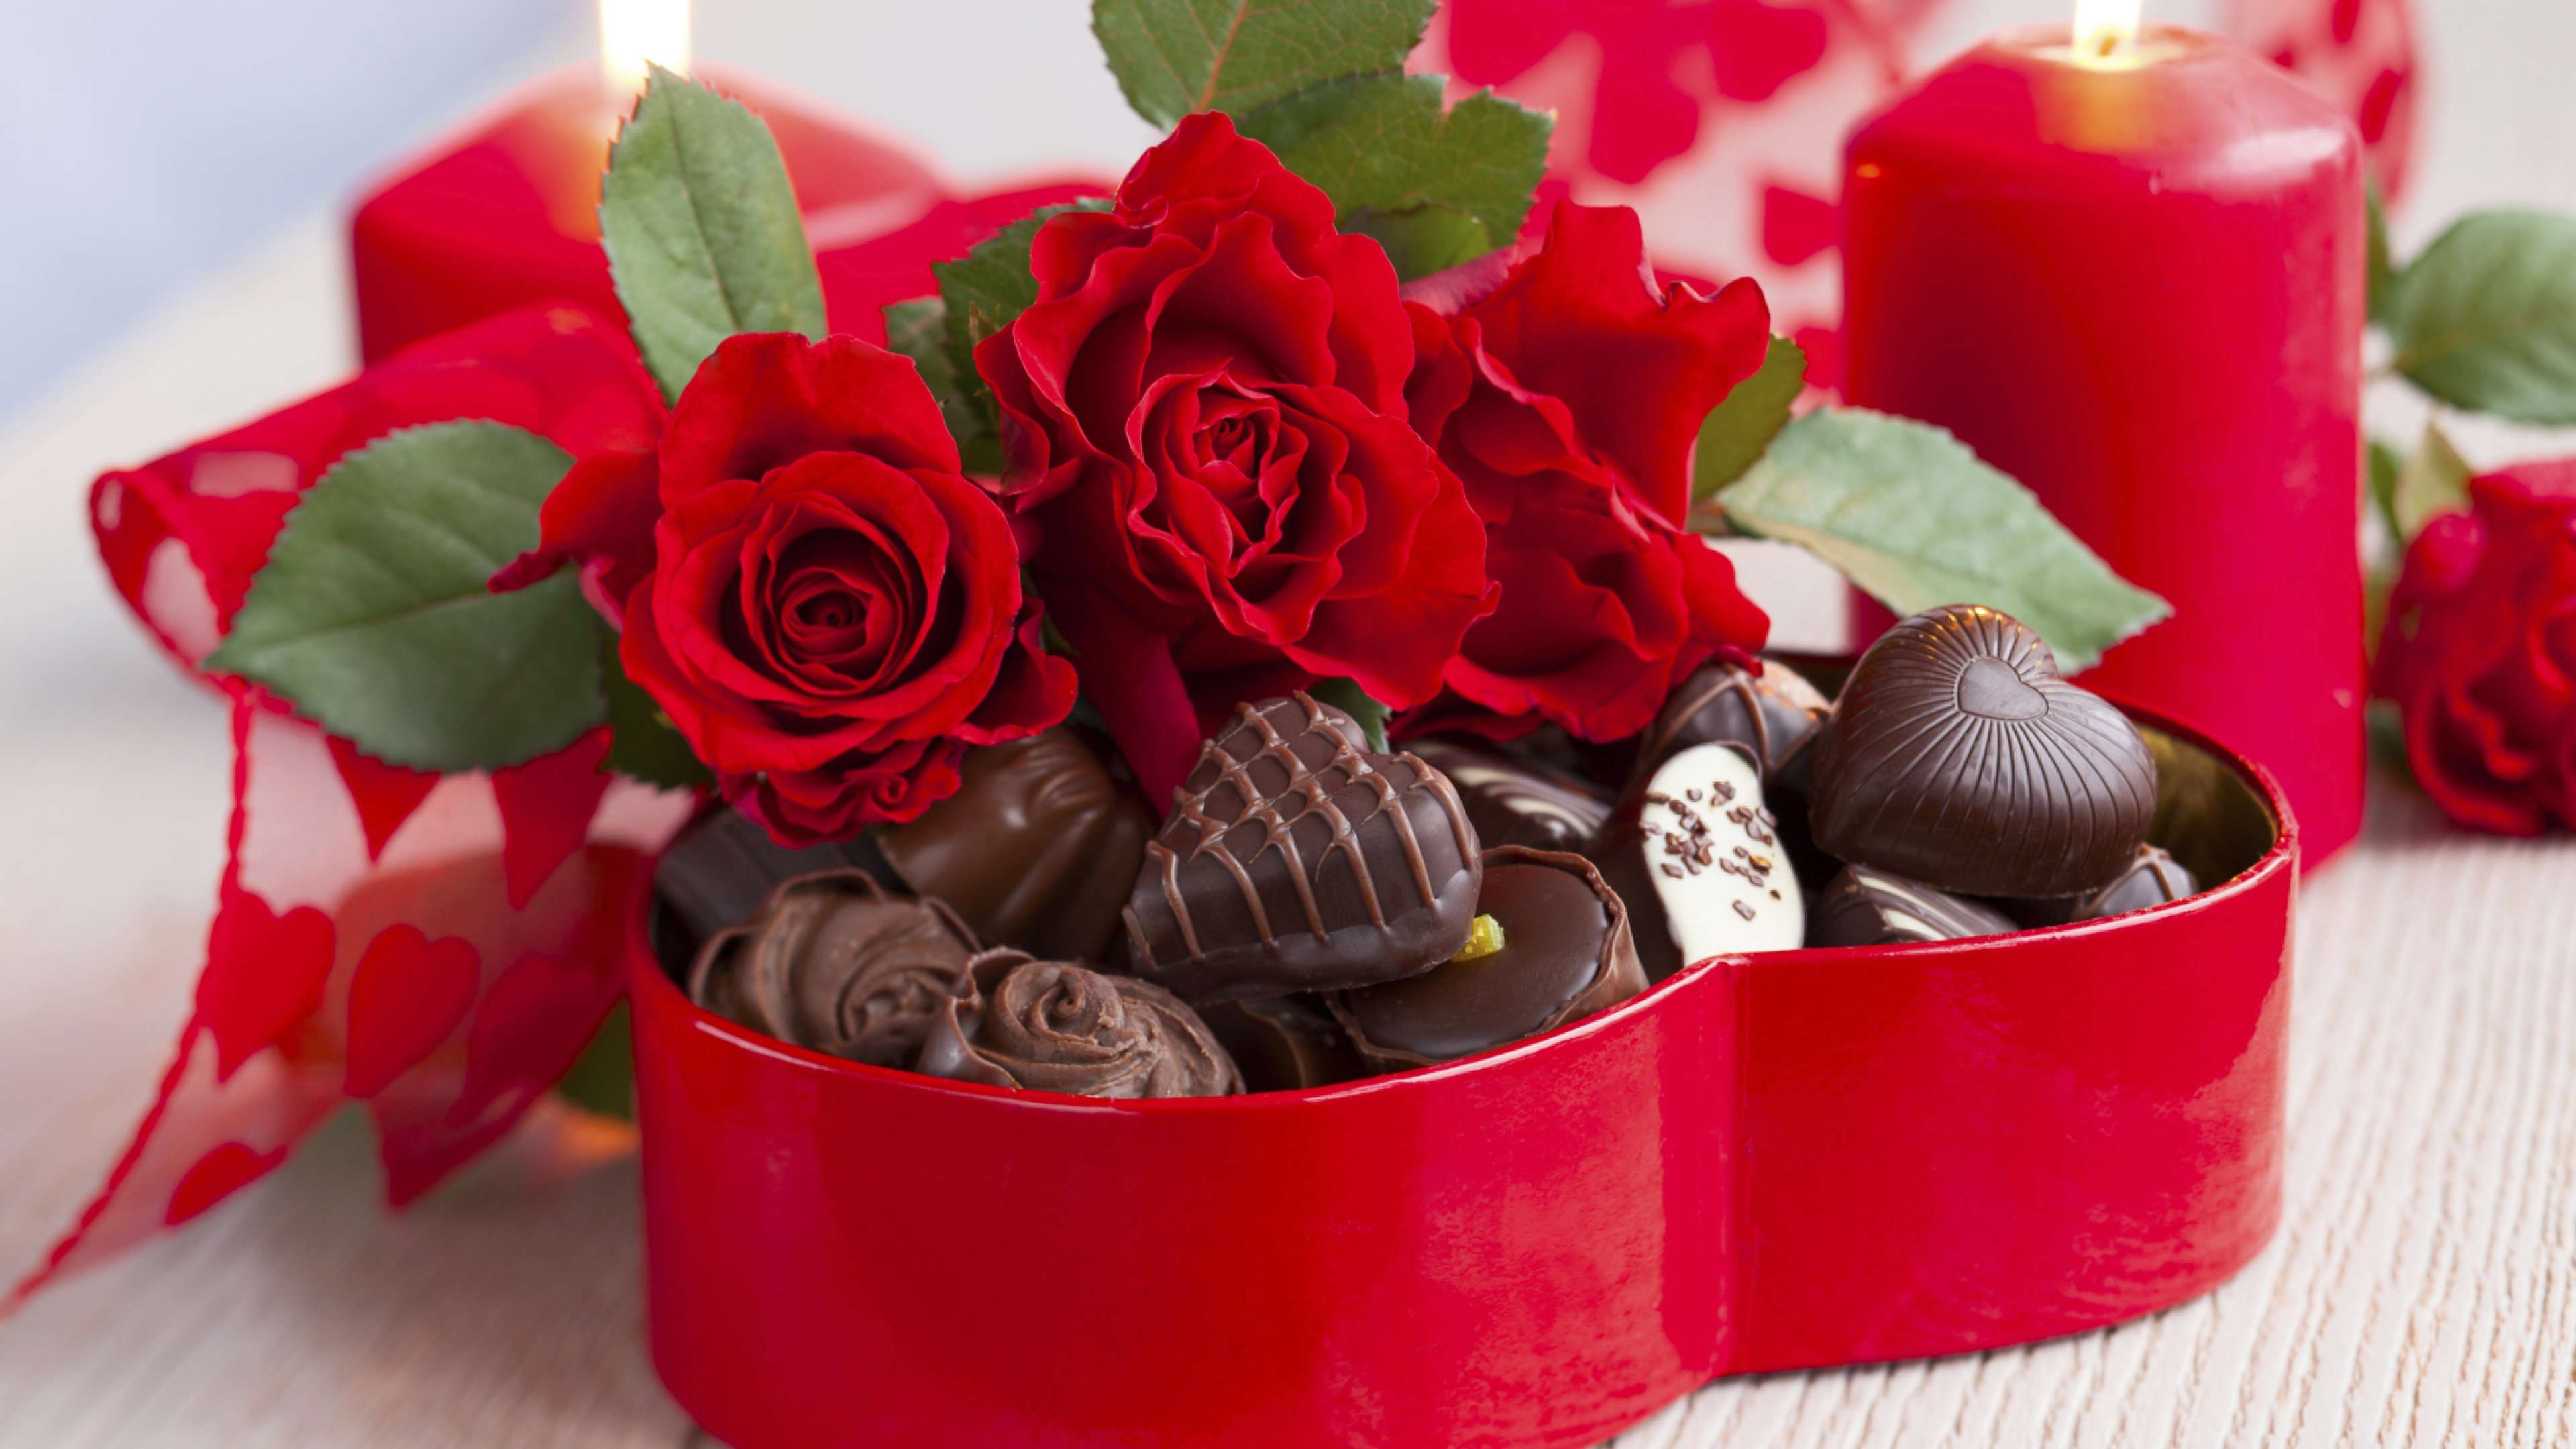 Chocolates-Box-Red-Roses-Valentine-Day-Gift-WallpapersByte-com-3840x2160